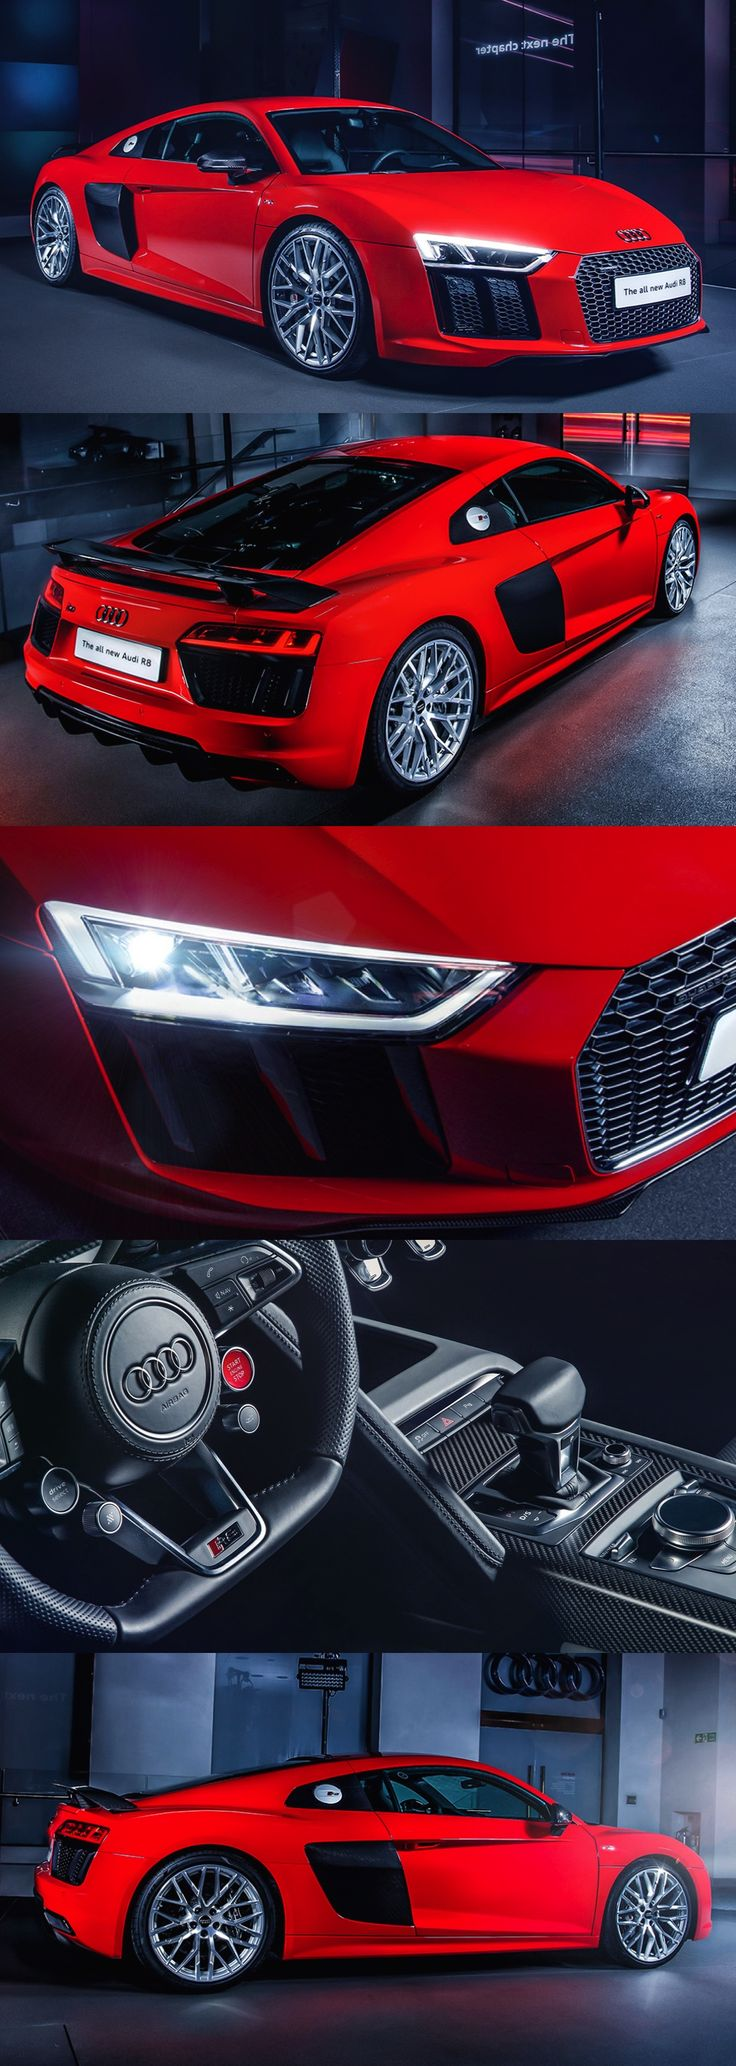 Audi R8 V10 plus - 0-62 mph in 3.2 seconds, 0-124mph in 9.9 seconds, top speed 205mph, combined MPG 23.9